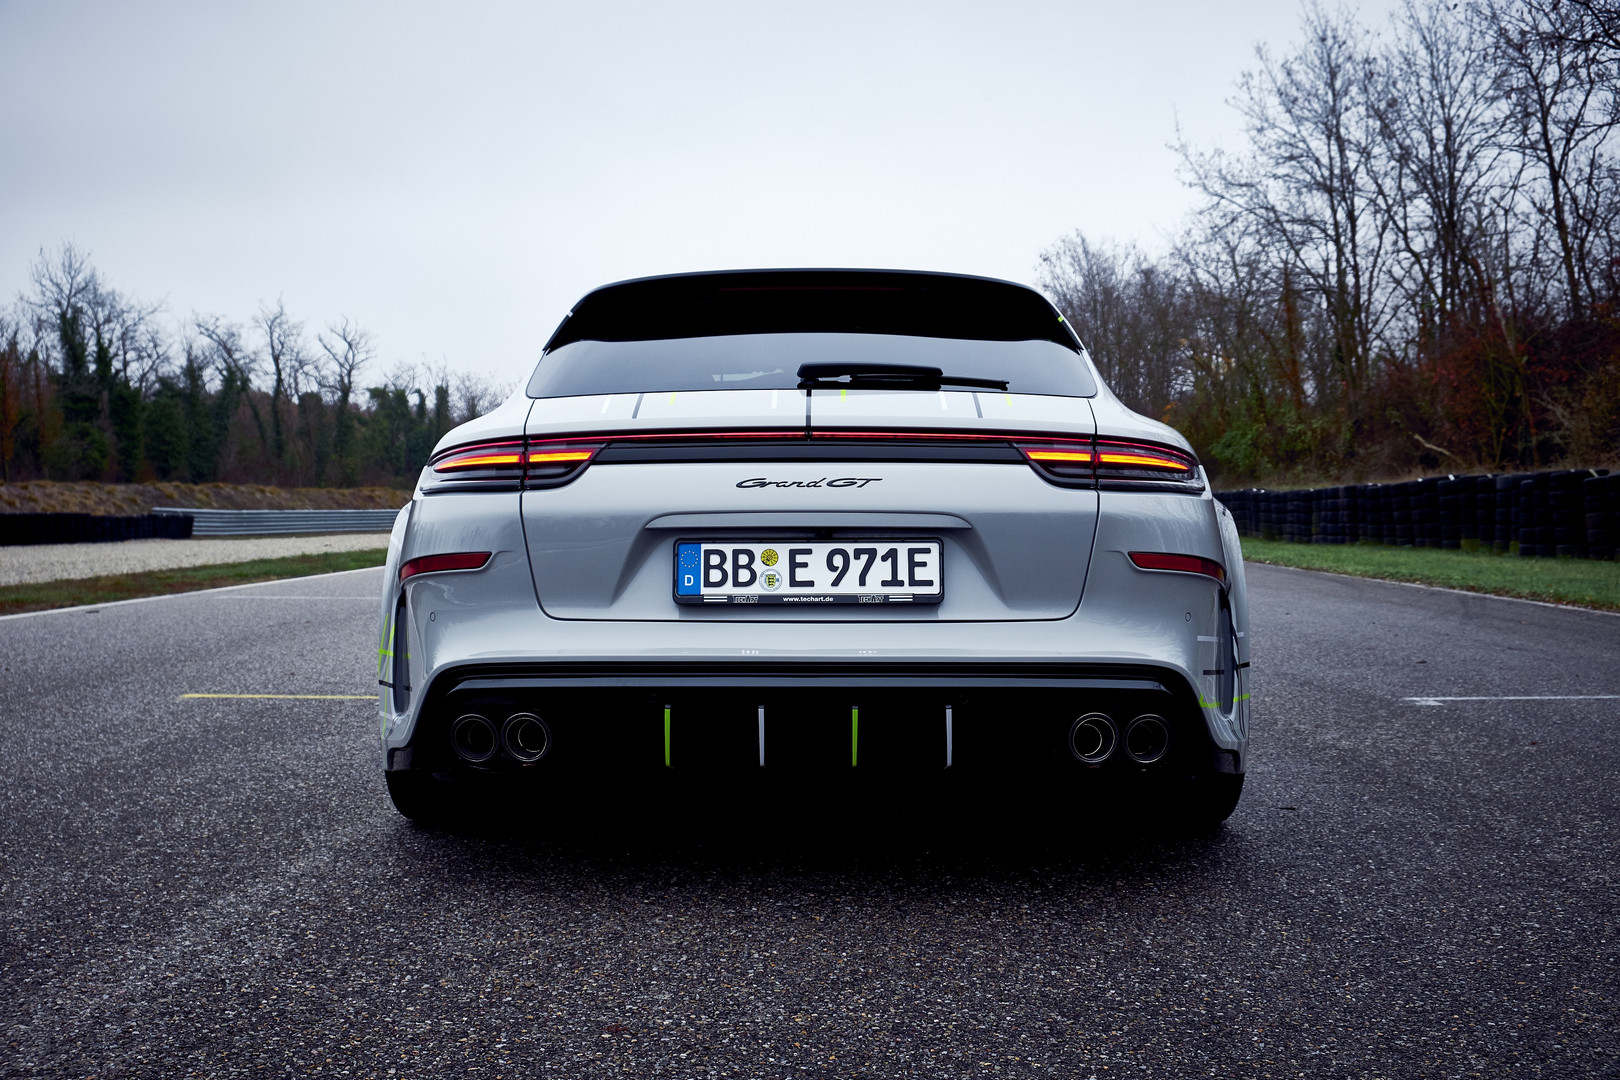 panamera-turbo-s-e-hybrid-techart-14.jpg